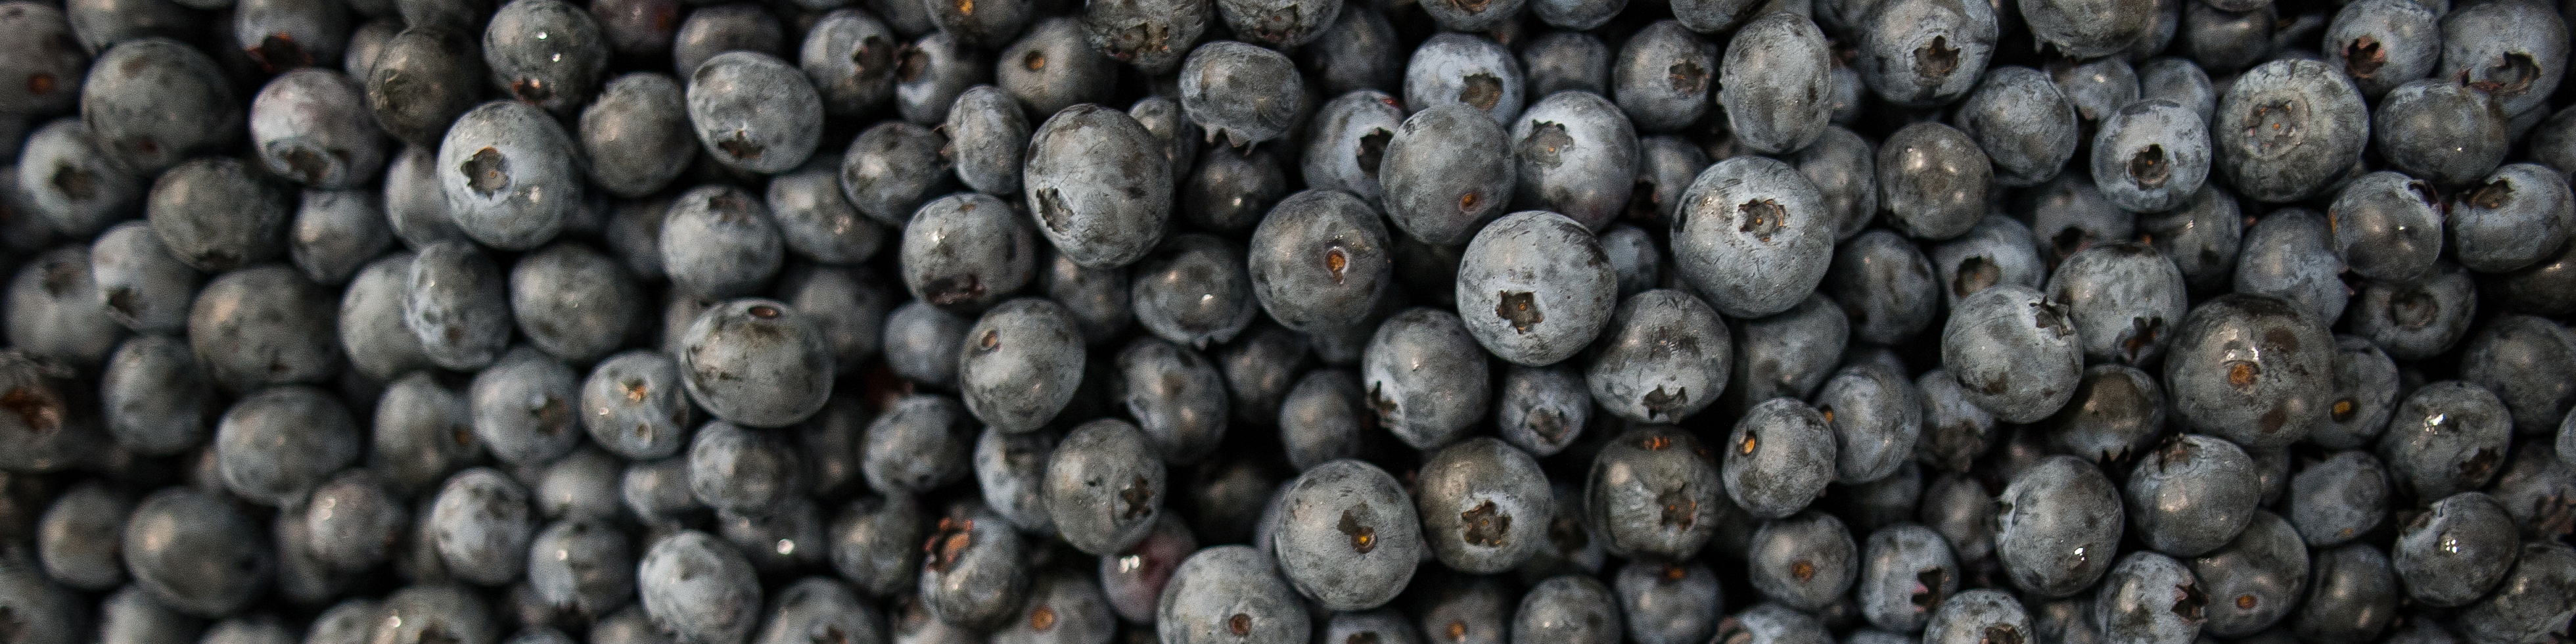 Blueberries, Country magic